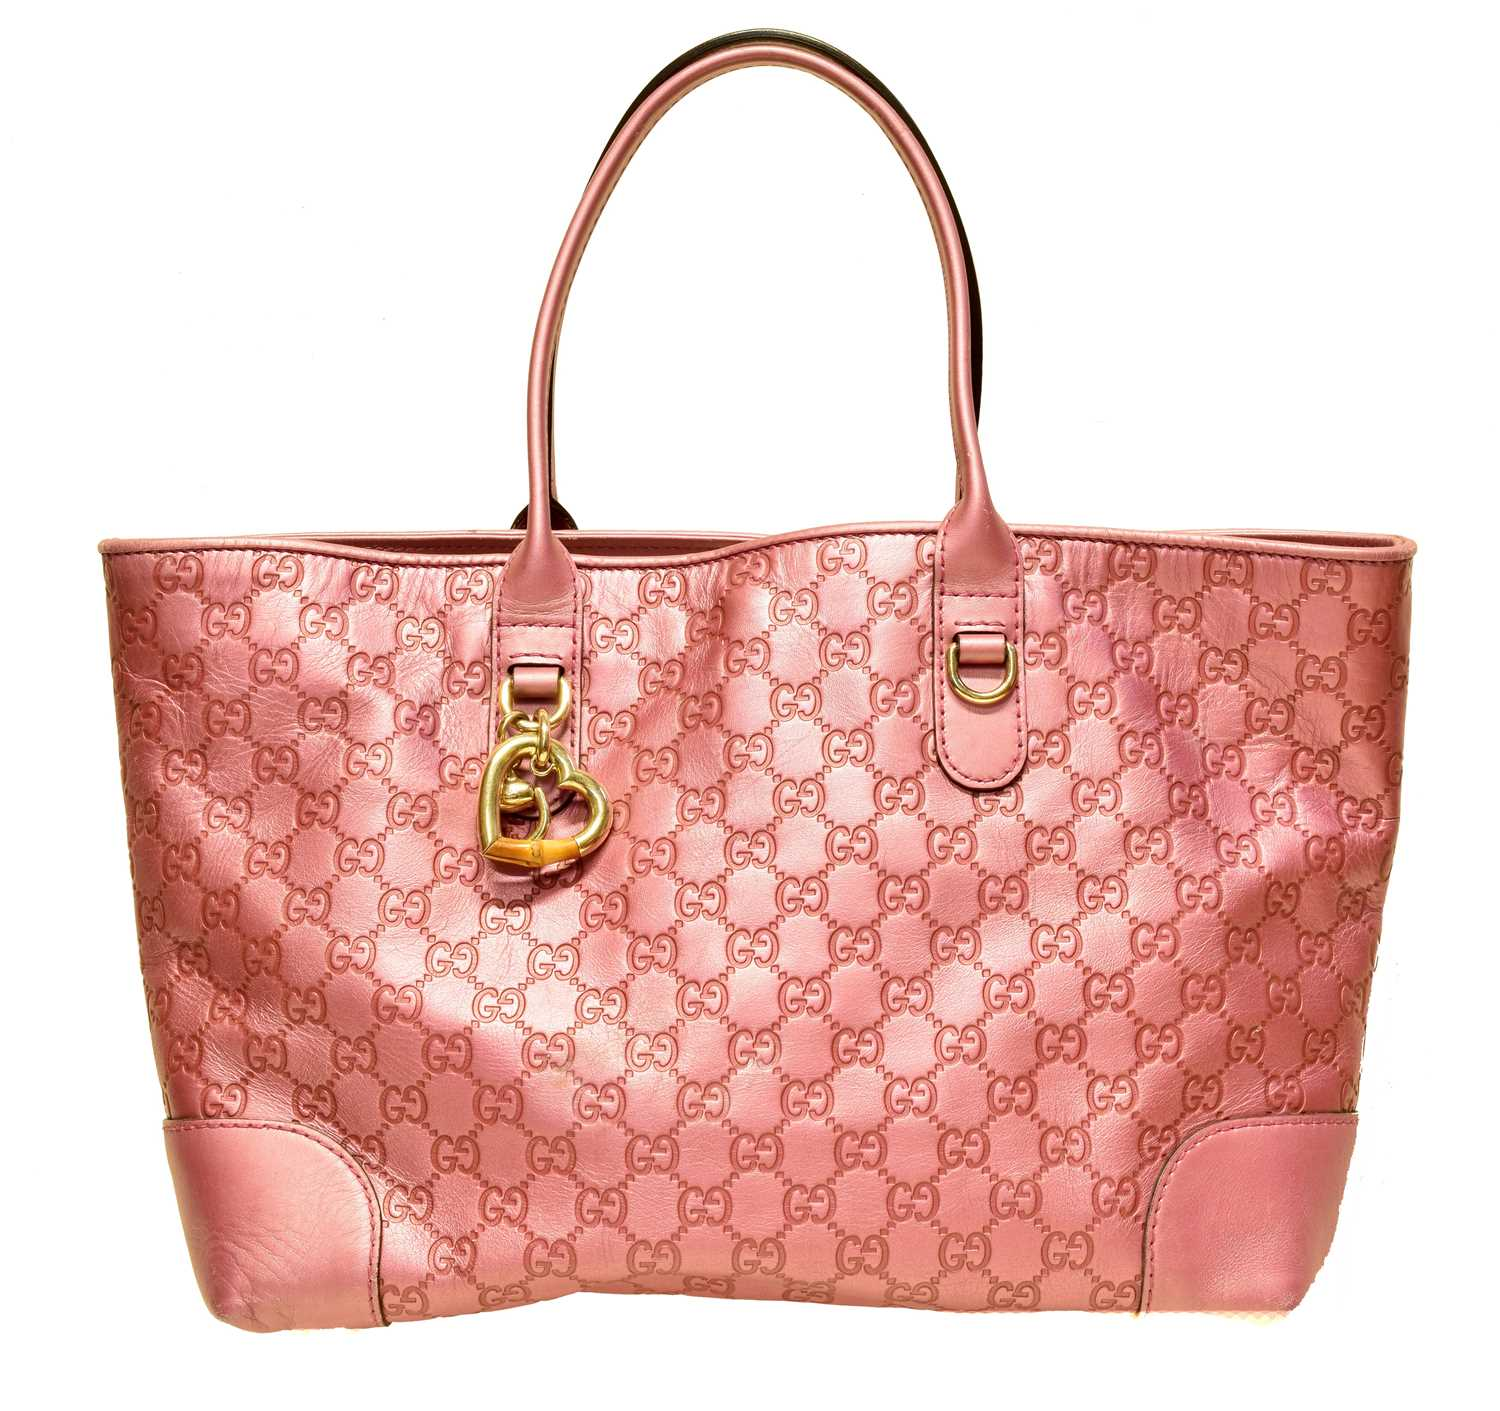 A Gucci 'Hearbit' Tote Bag, the metallic pink Guccissima leather exterior with gold tone hardware, bamboo and horsebit detailing, serial no. 269956-520981.